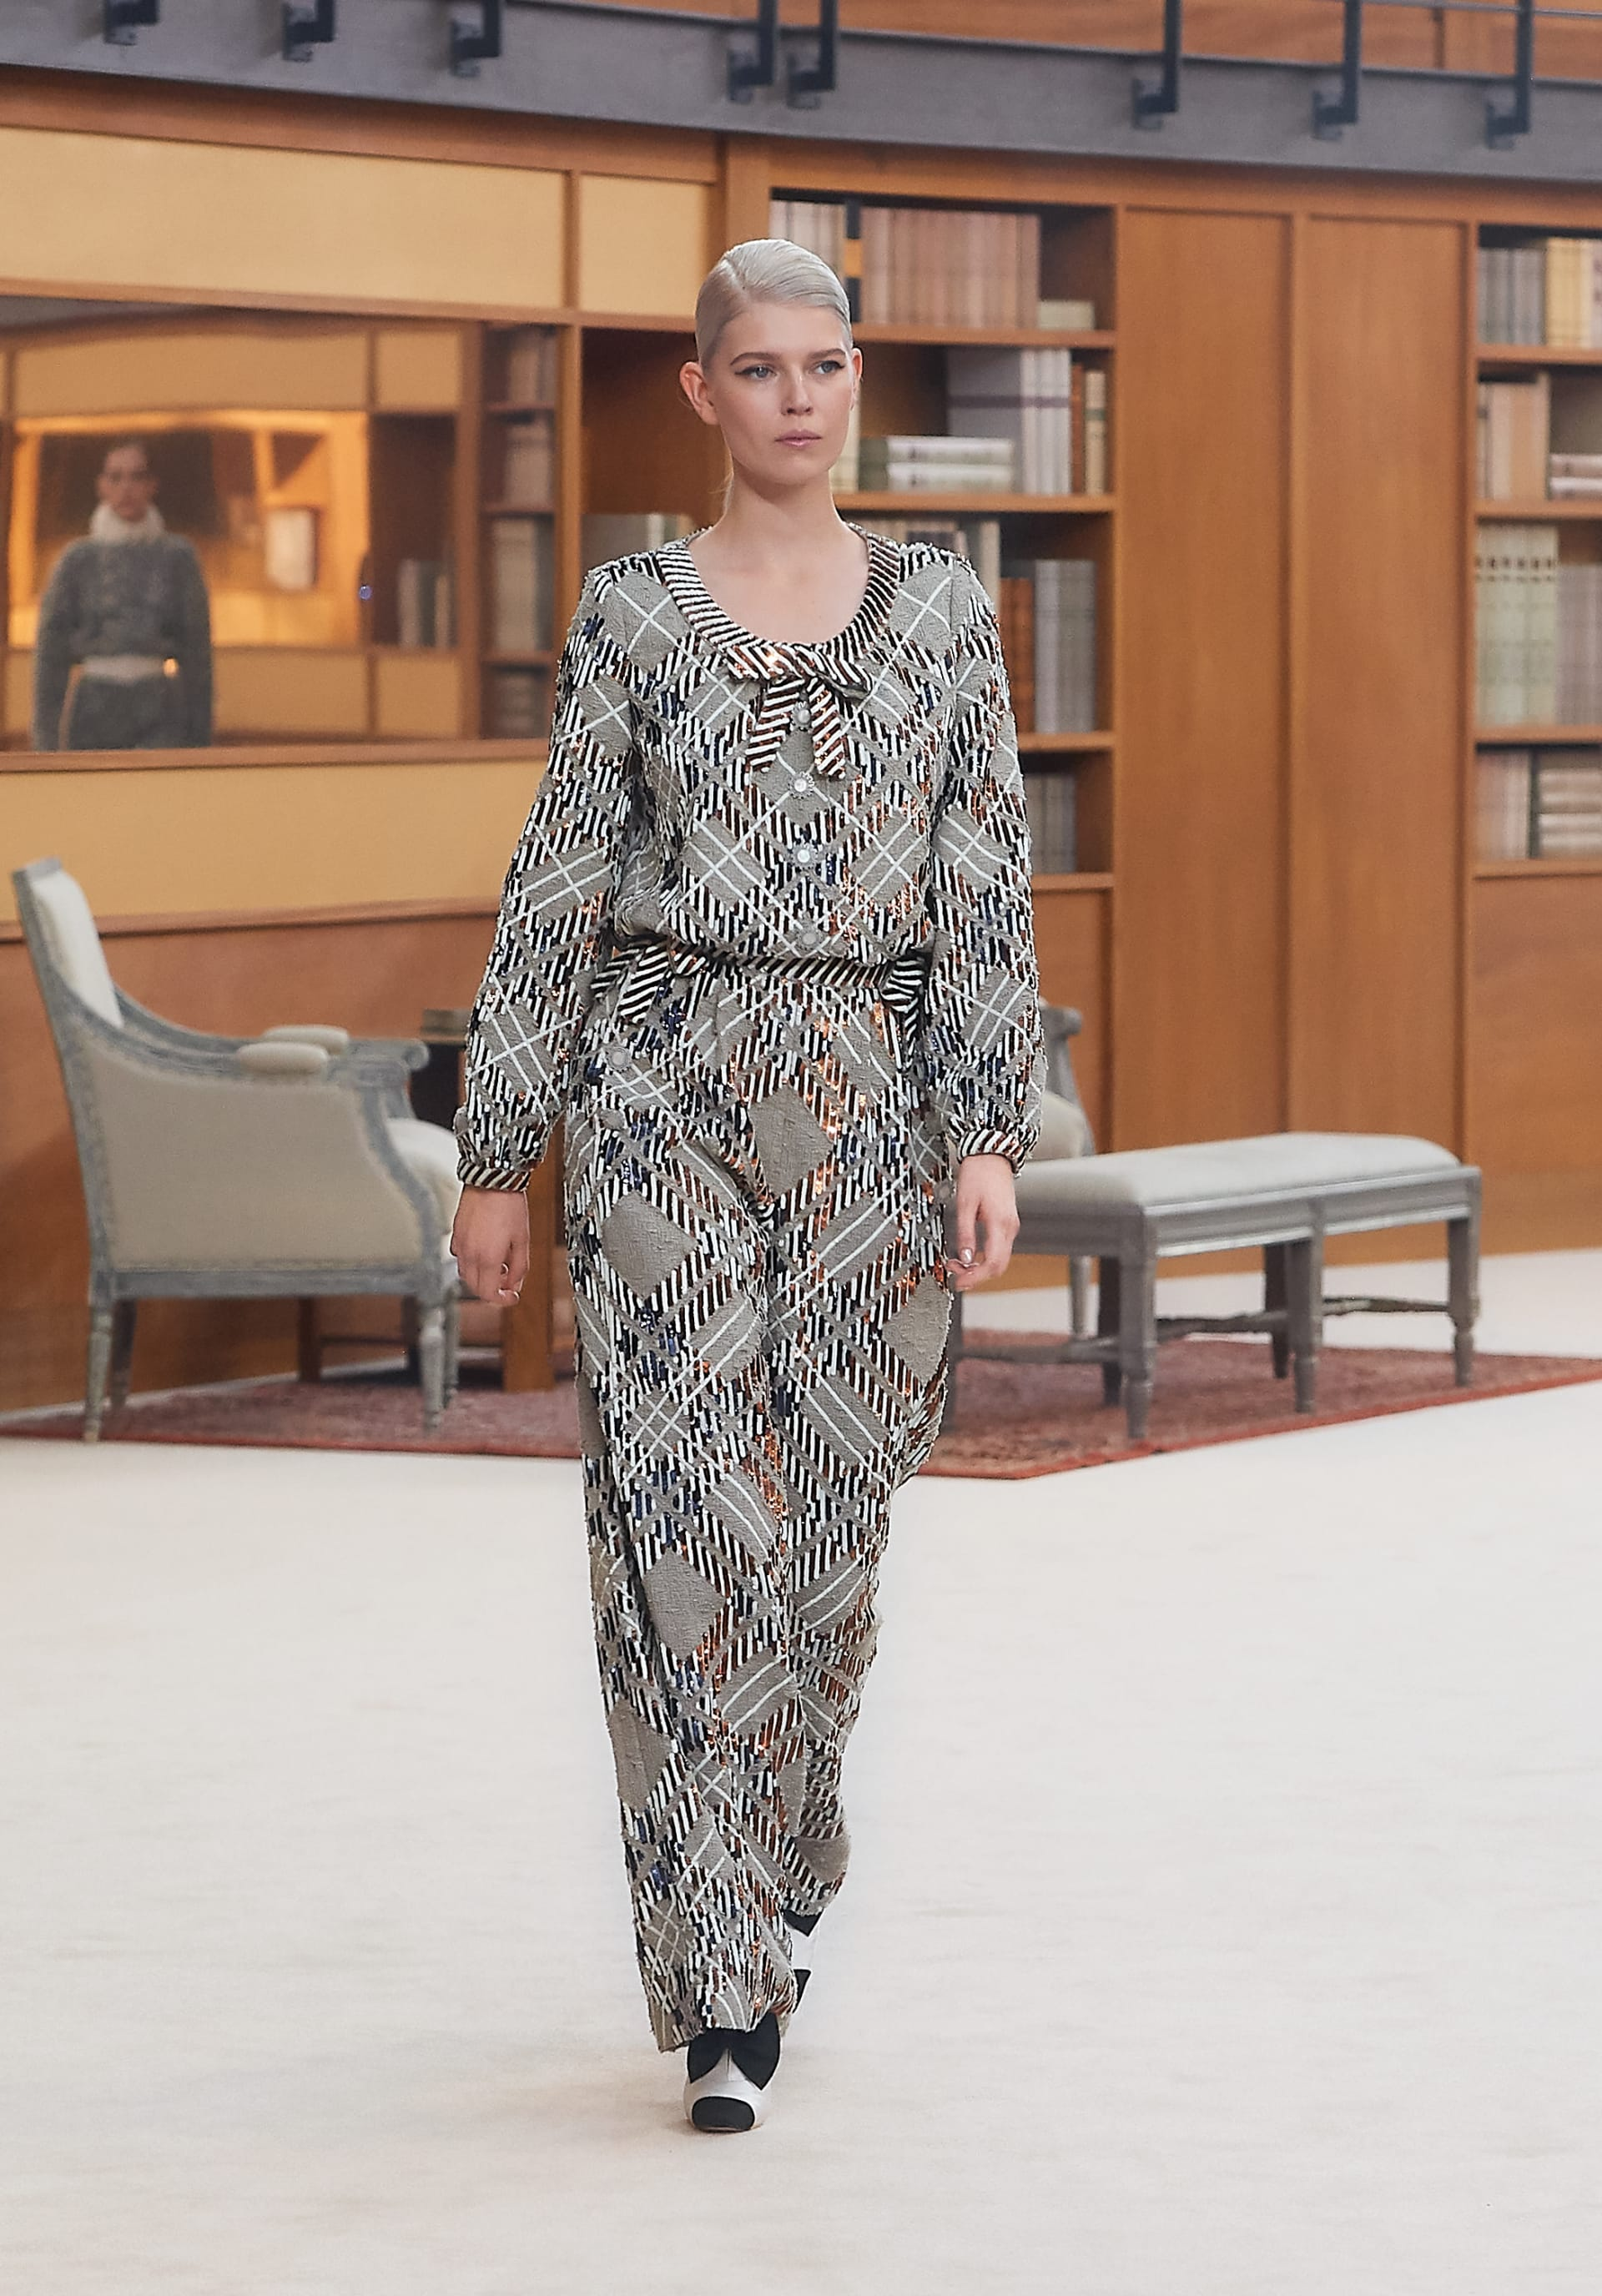 View 1 - Look 23 - Fall-Winter 2019/20 Haute-Couture - see full sized version